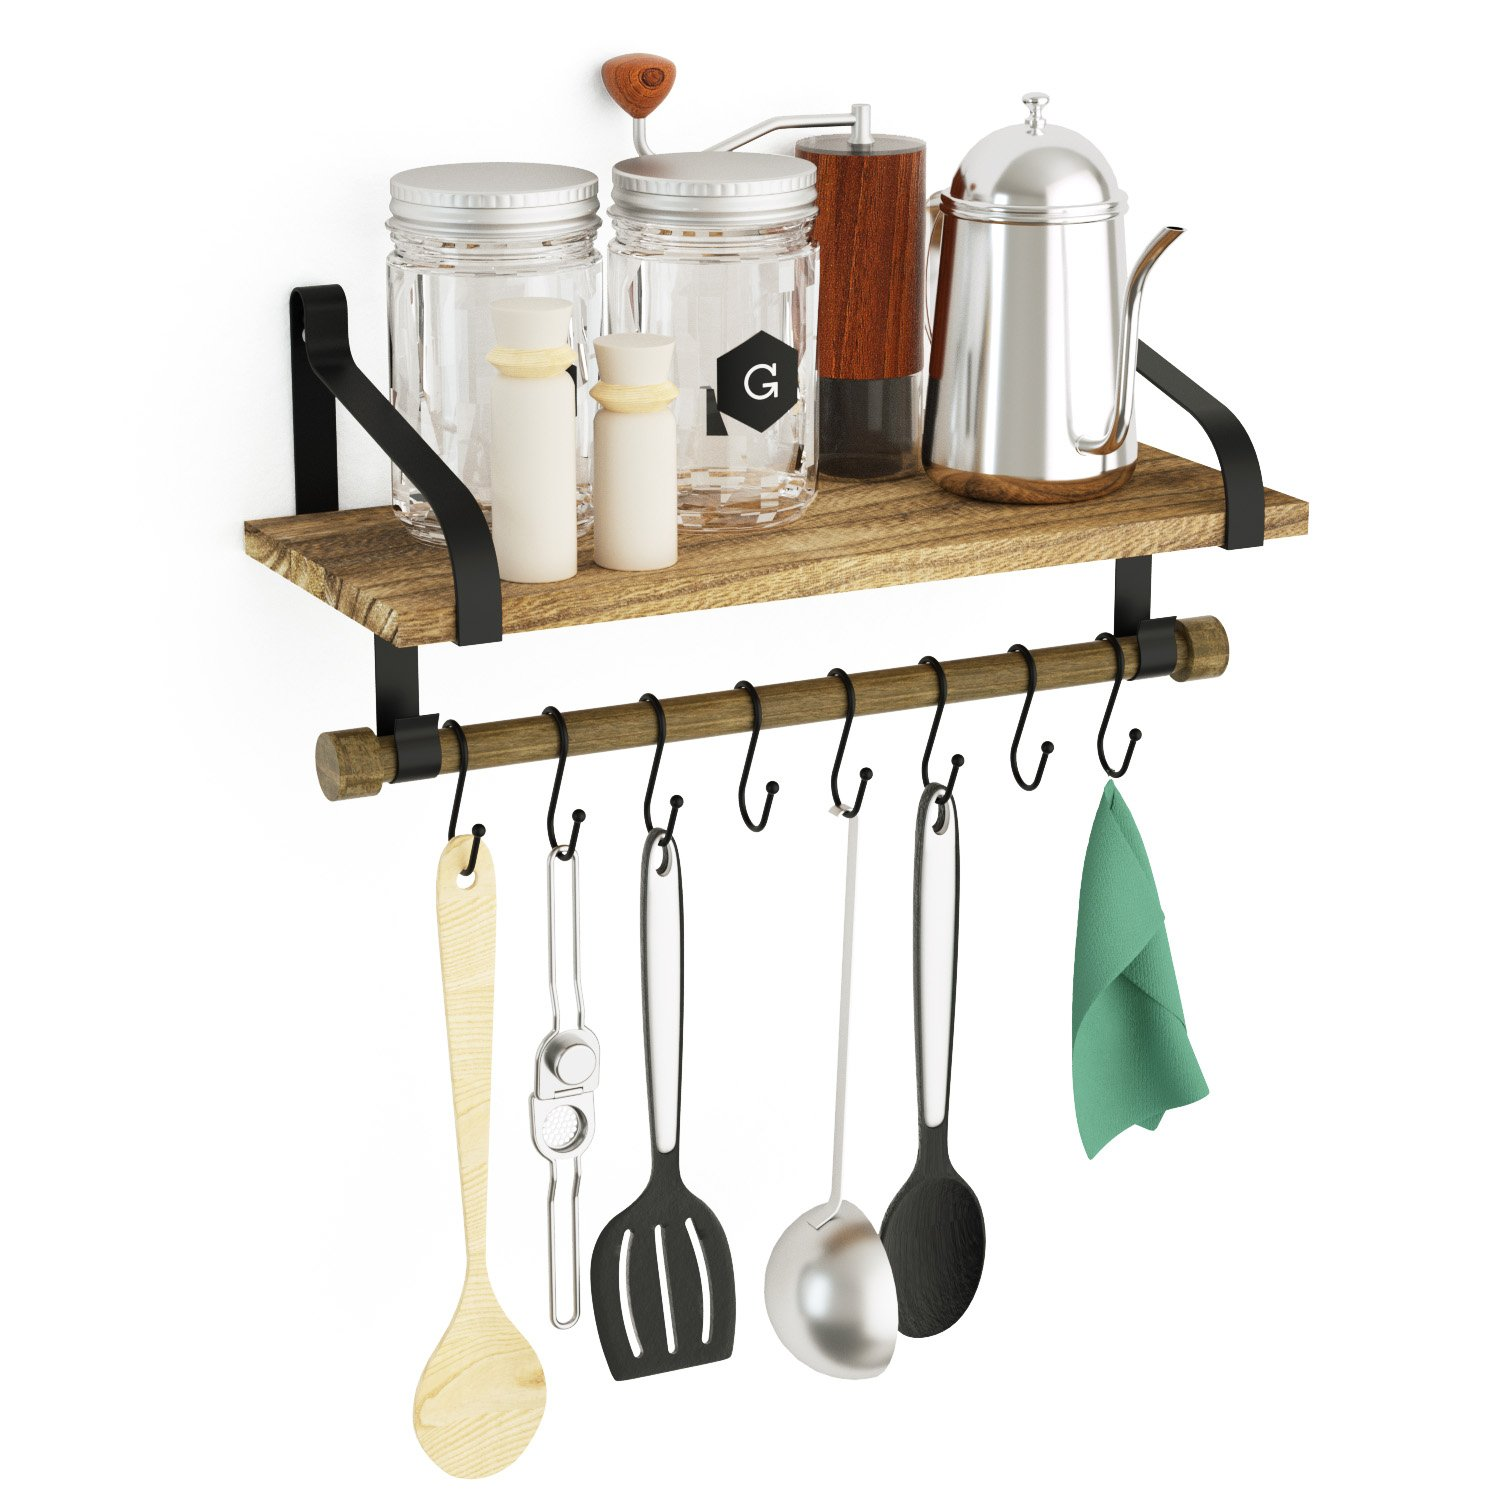 Love-KANKEI Wall Shelf for Kitchen - Rustic Wood Kitchen Spice Rack with Towel Bar and 8 Removable Hooks for Organize Cooking Utensils